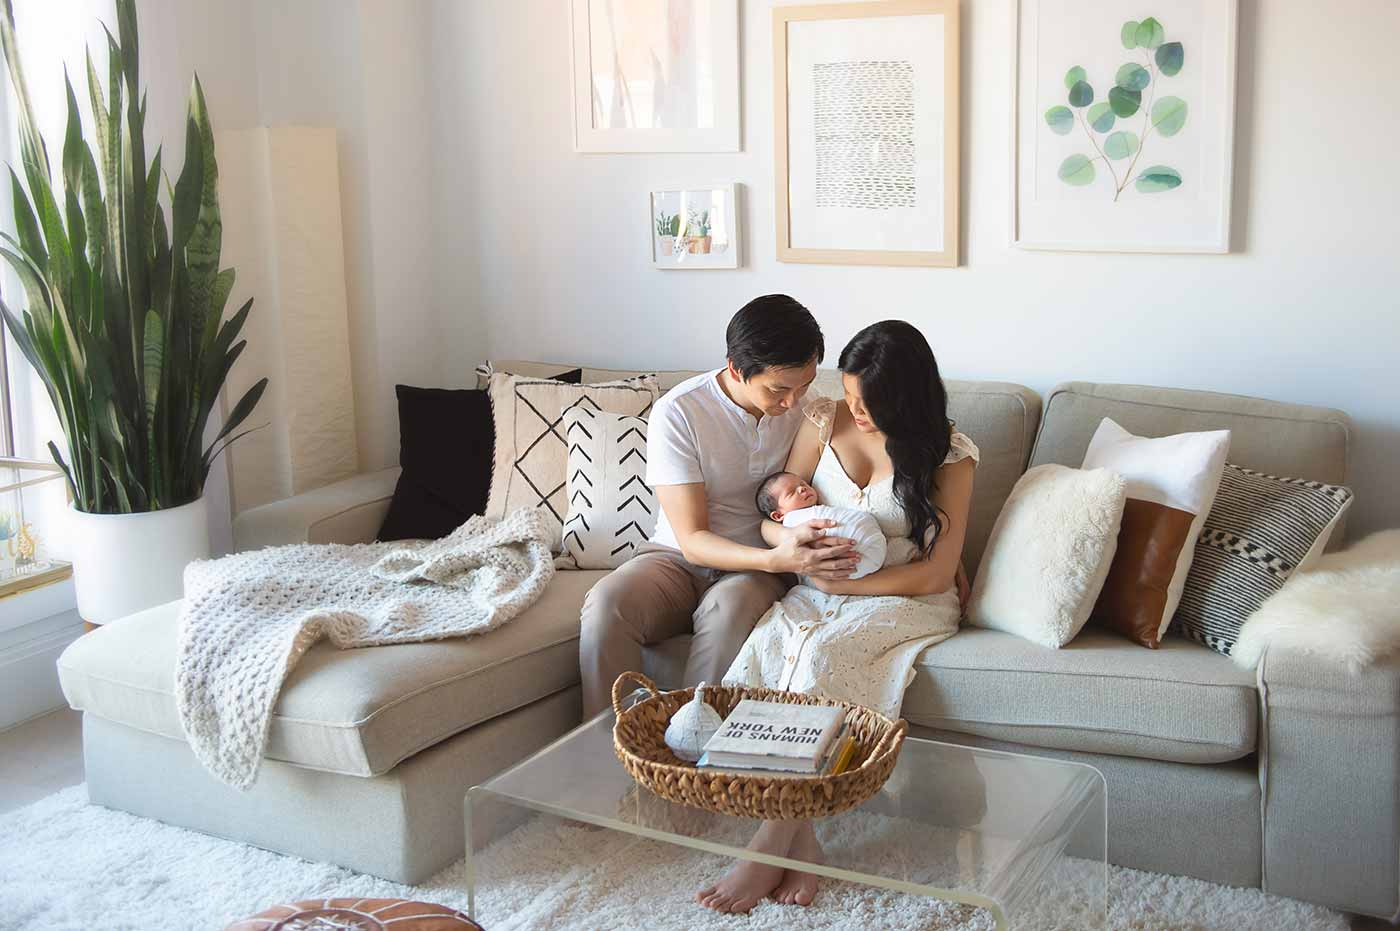 lifestyle newborn and family photography in boho chic decorated home